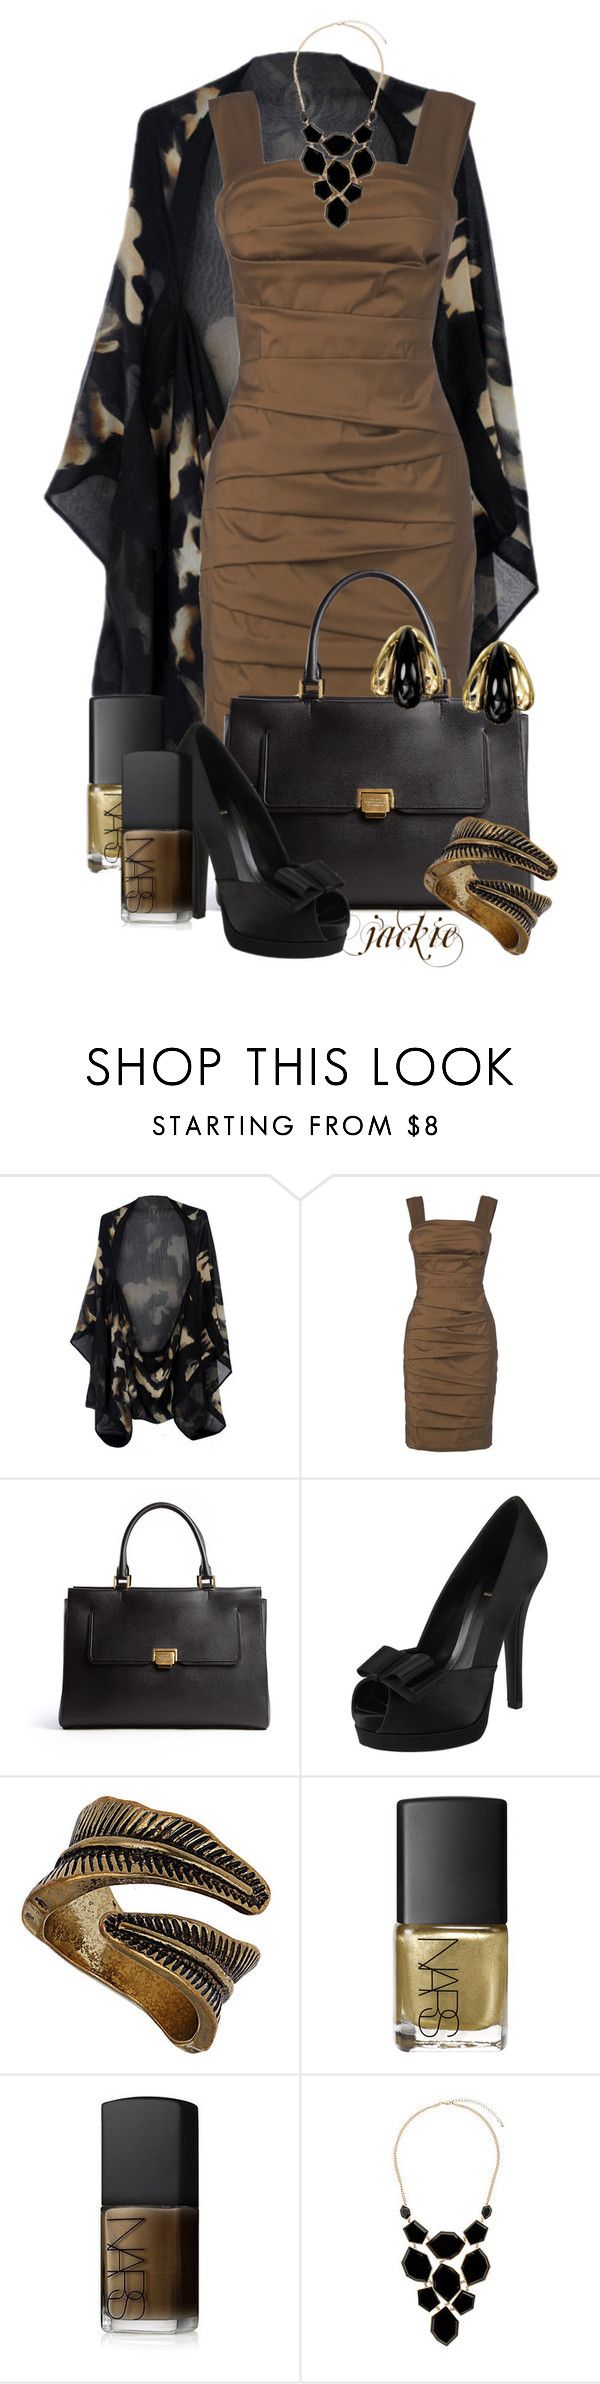 """""""Black and Brown"""" by jackie22 ❤ liked on Polyvore featuring Alexander McQueen, Phase Eight, Smythson, Fendi, Dorothy Perkins, NARS Cosmetics, Wallis, peep-toe shoes, statement necklaces and camo"""